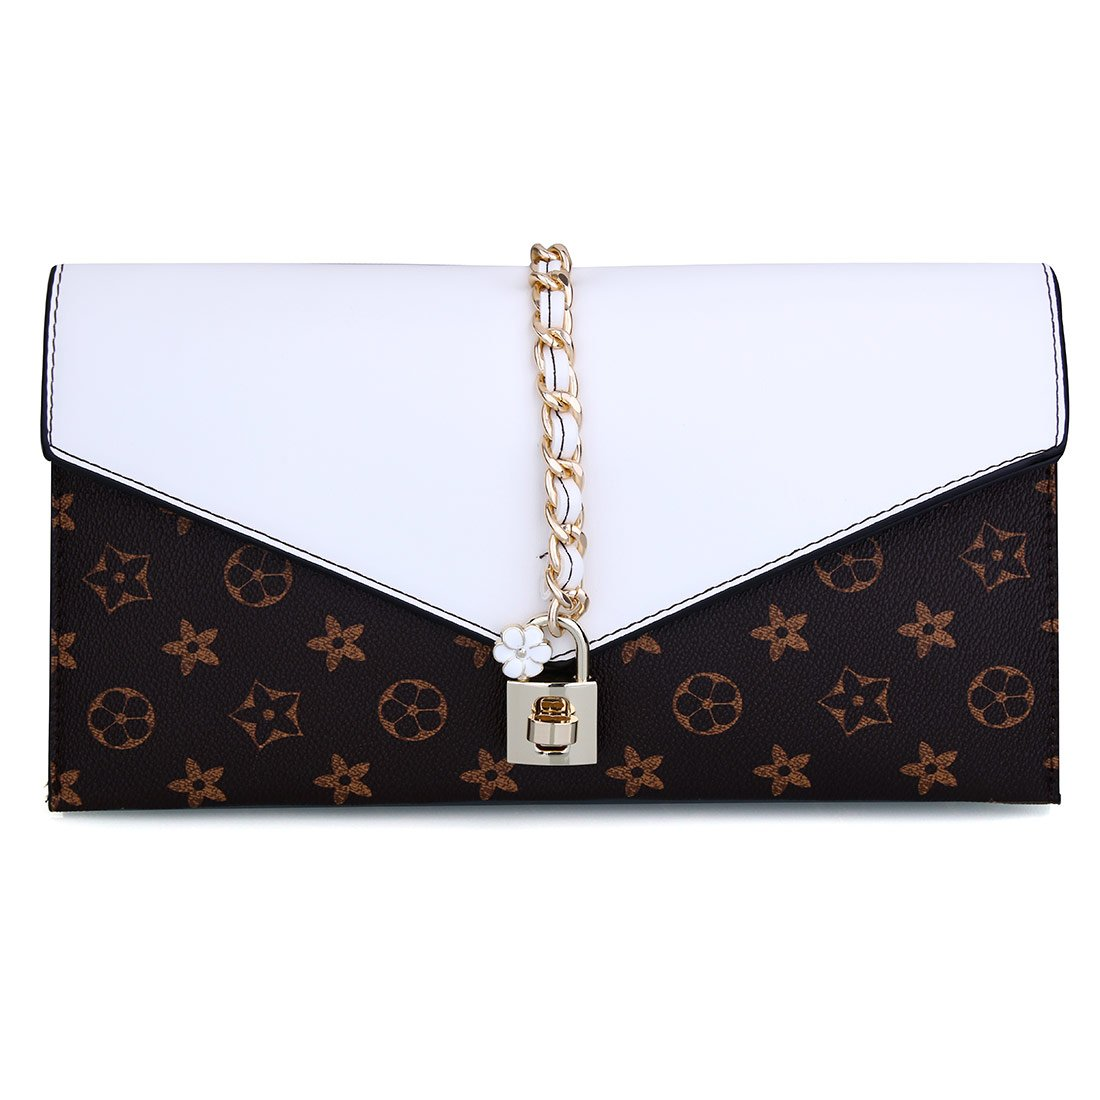 5b2df1ed8720 Women Flower Designer Evening Clutch Crystal Evening Handbag with Lock  (White)  Amazon.co.uk  Shoes   Bags